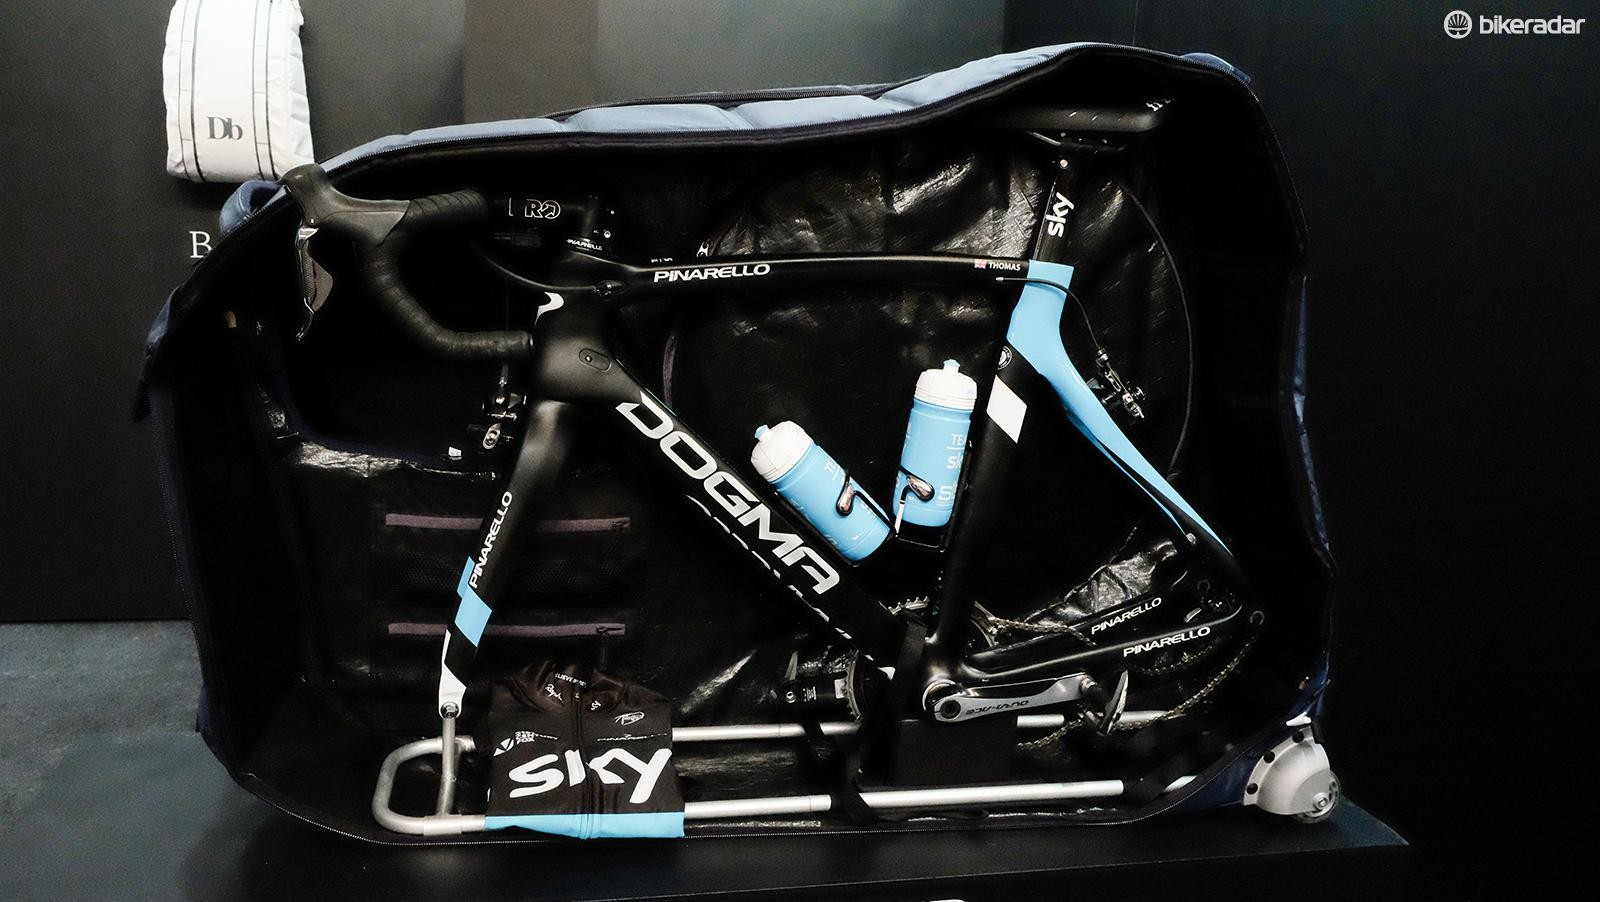 The Tour bag was designed with input from Team Sky